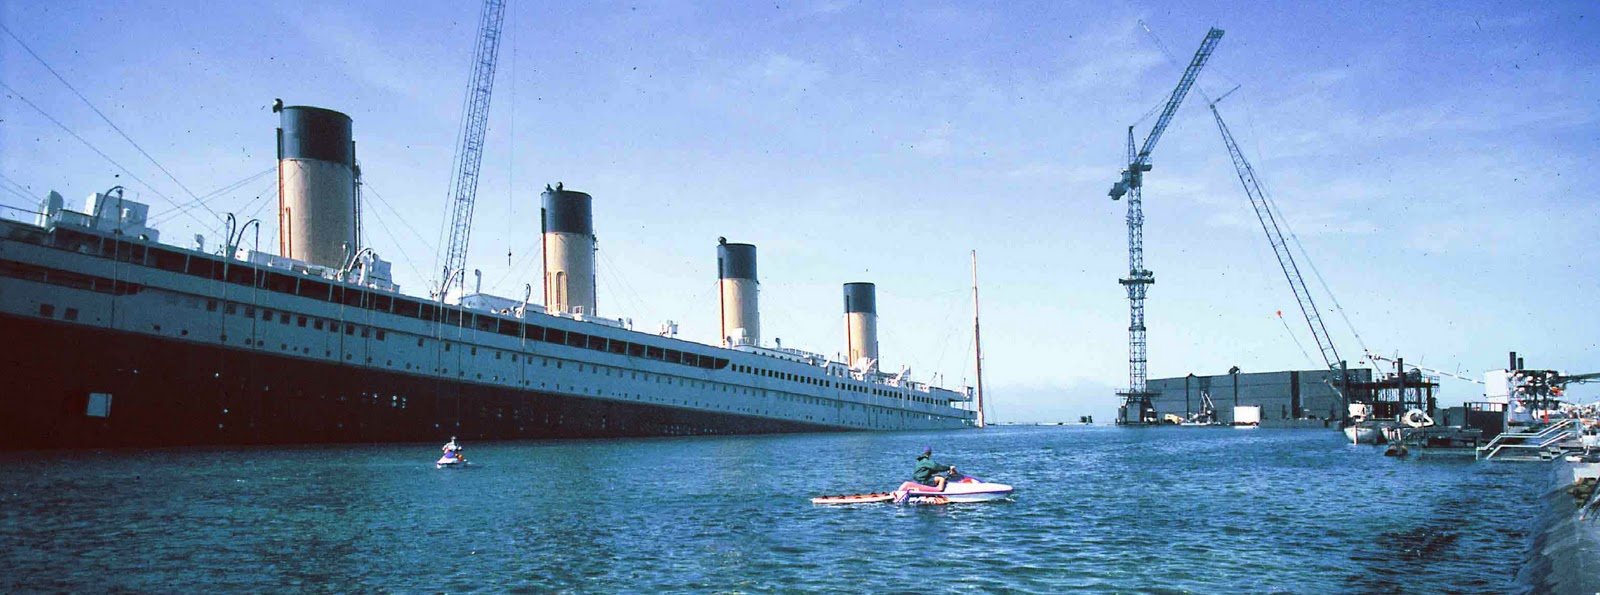 For The Filming Of Titanic James Cameron Built A Full Scale Set Of